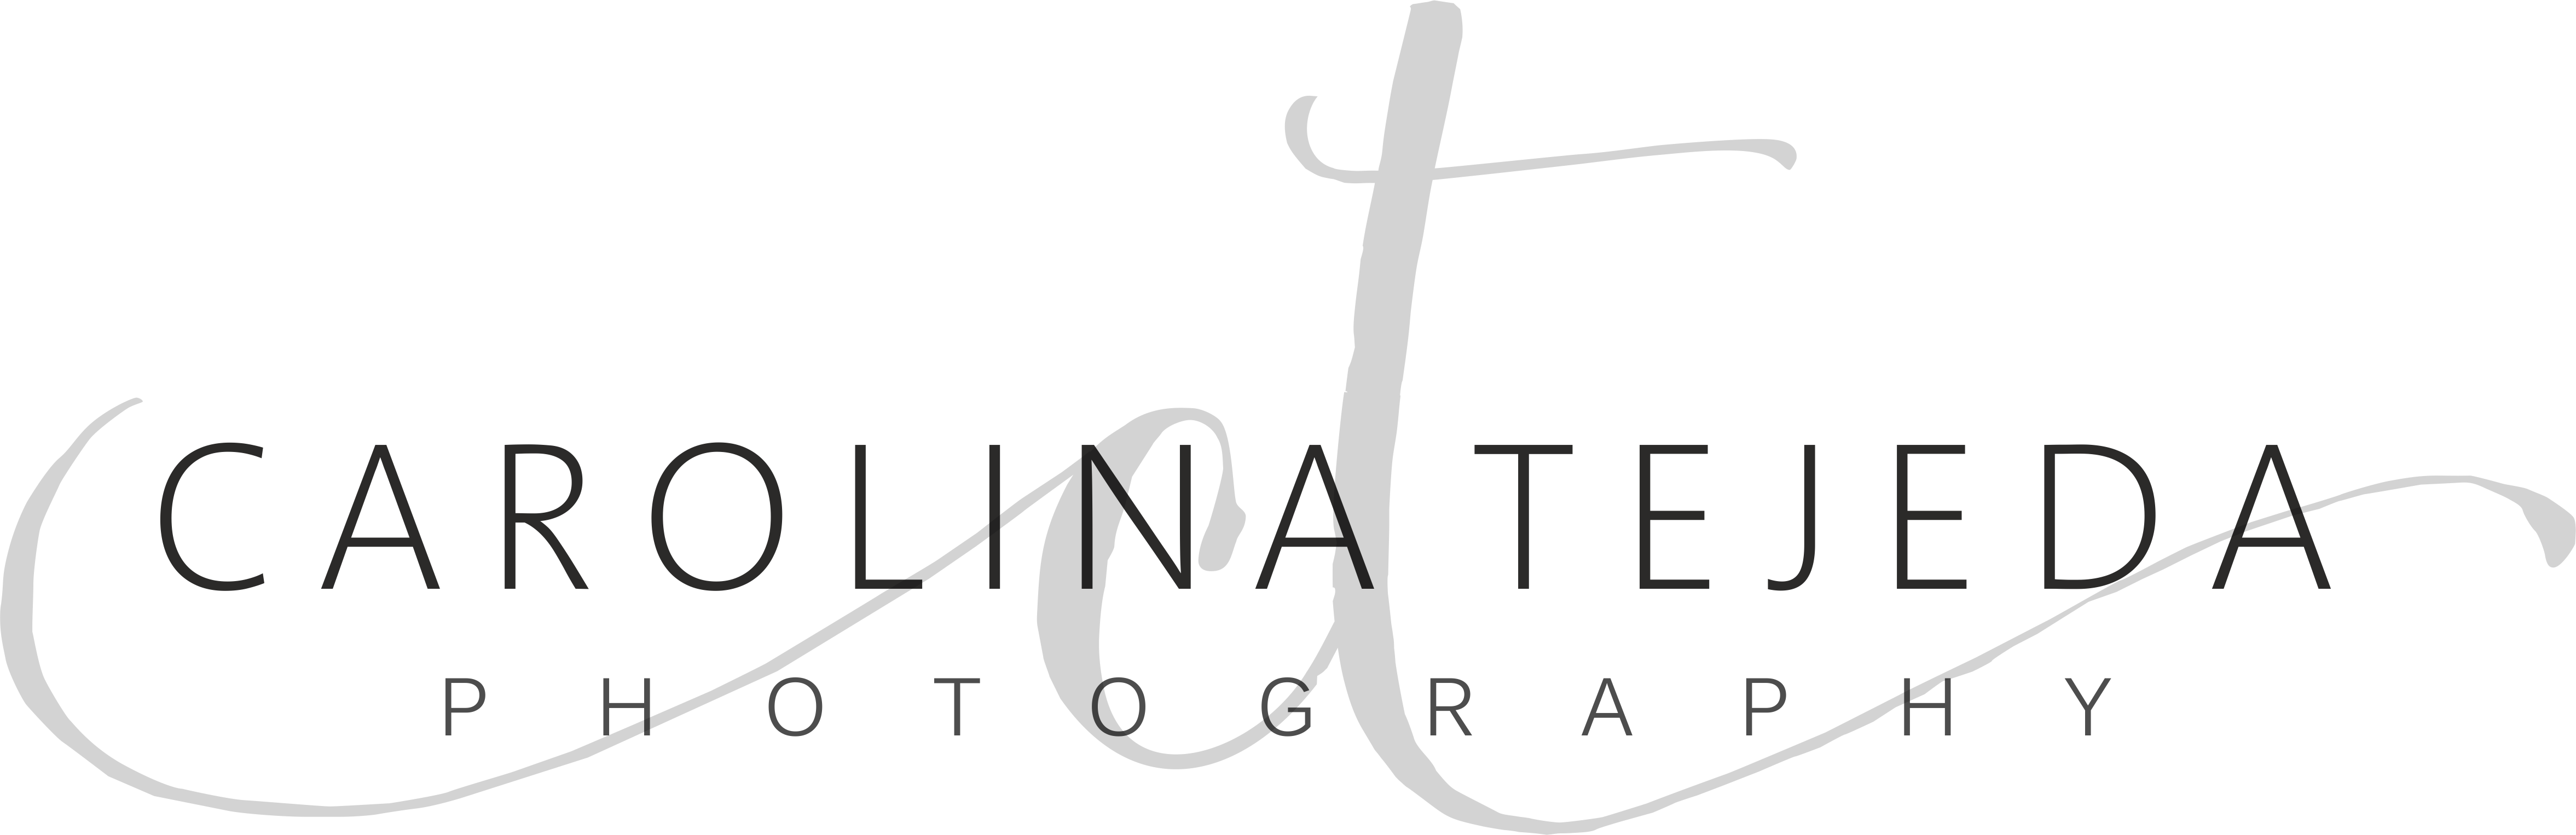 MATERNITY, NEWBORN, CHILDREN AND FAMILY PHOTOGRAPHER